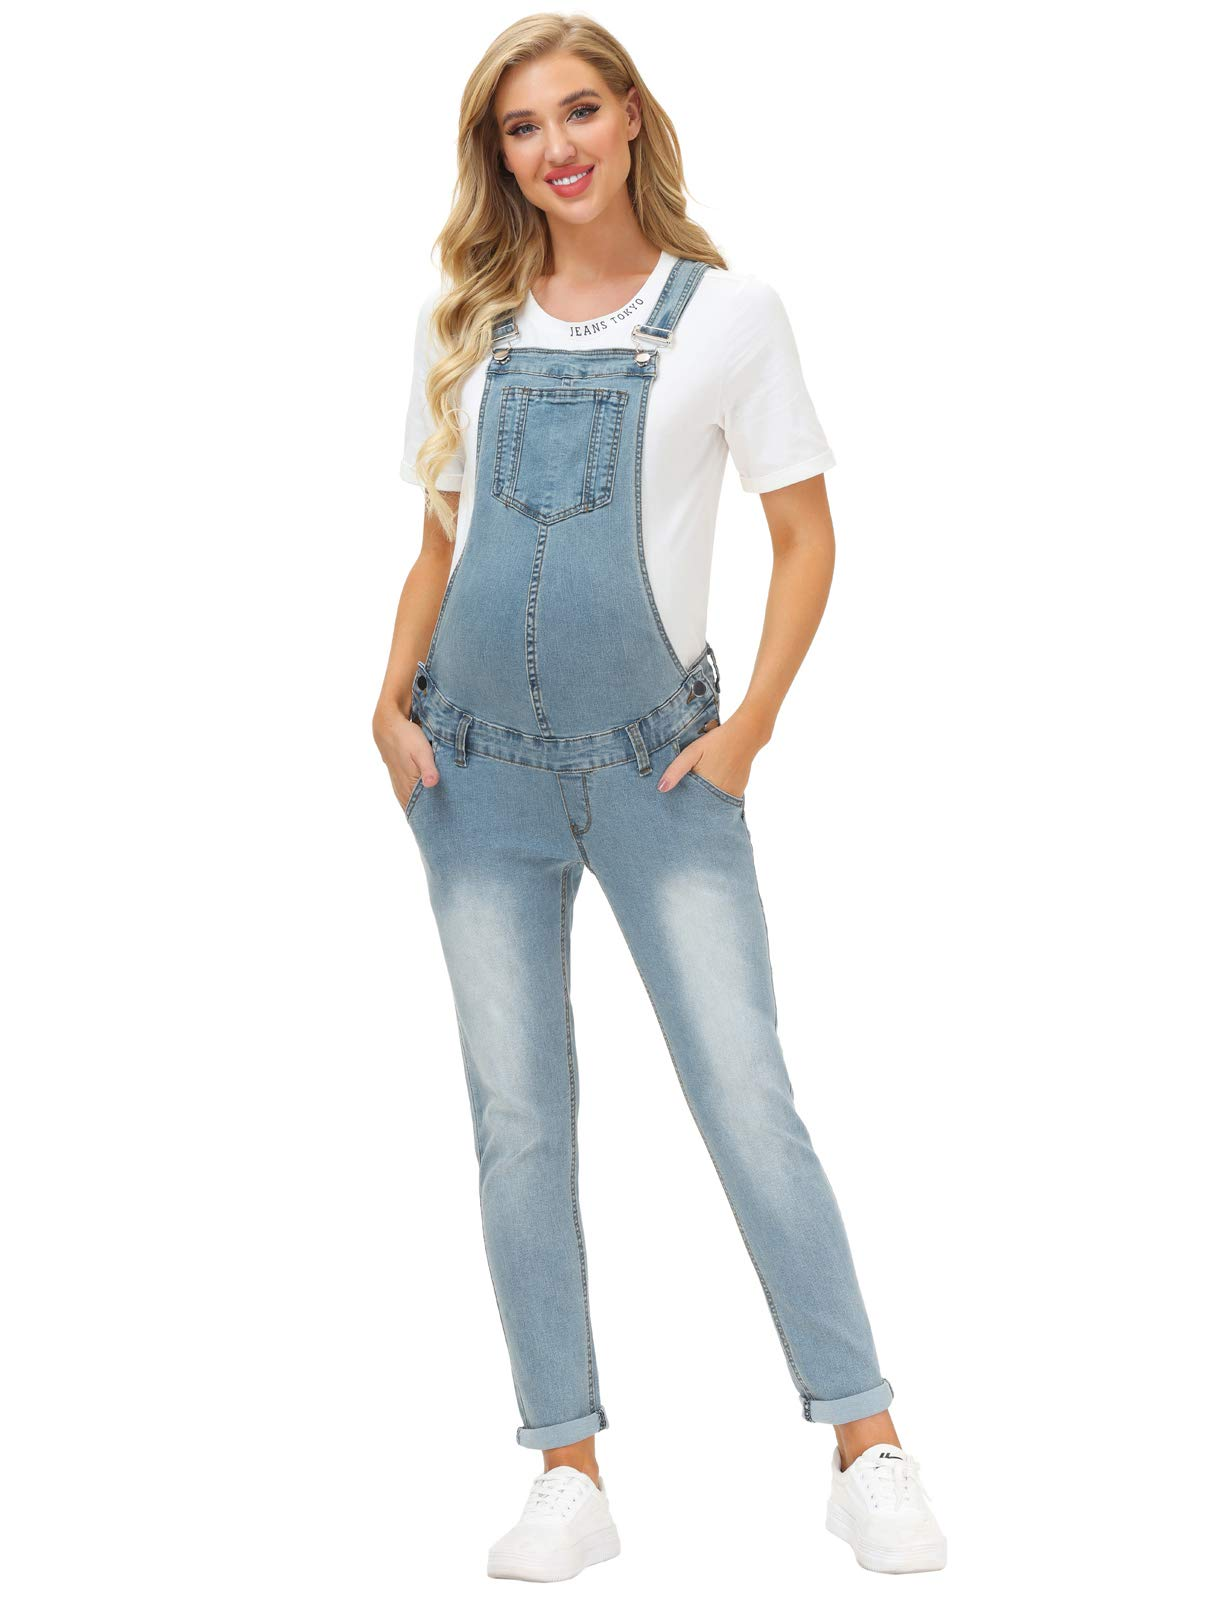 Maacie Maternity Denim Bib Overalls Jumpsuits with Pockets for Women